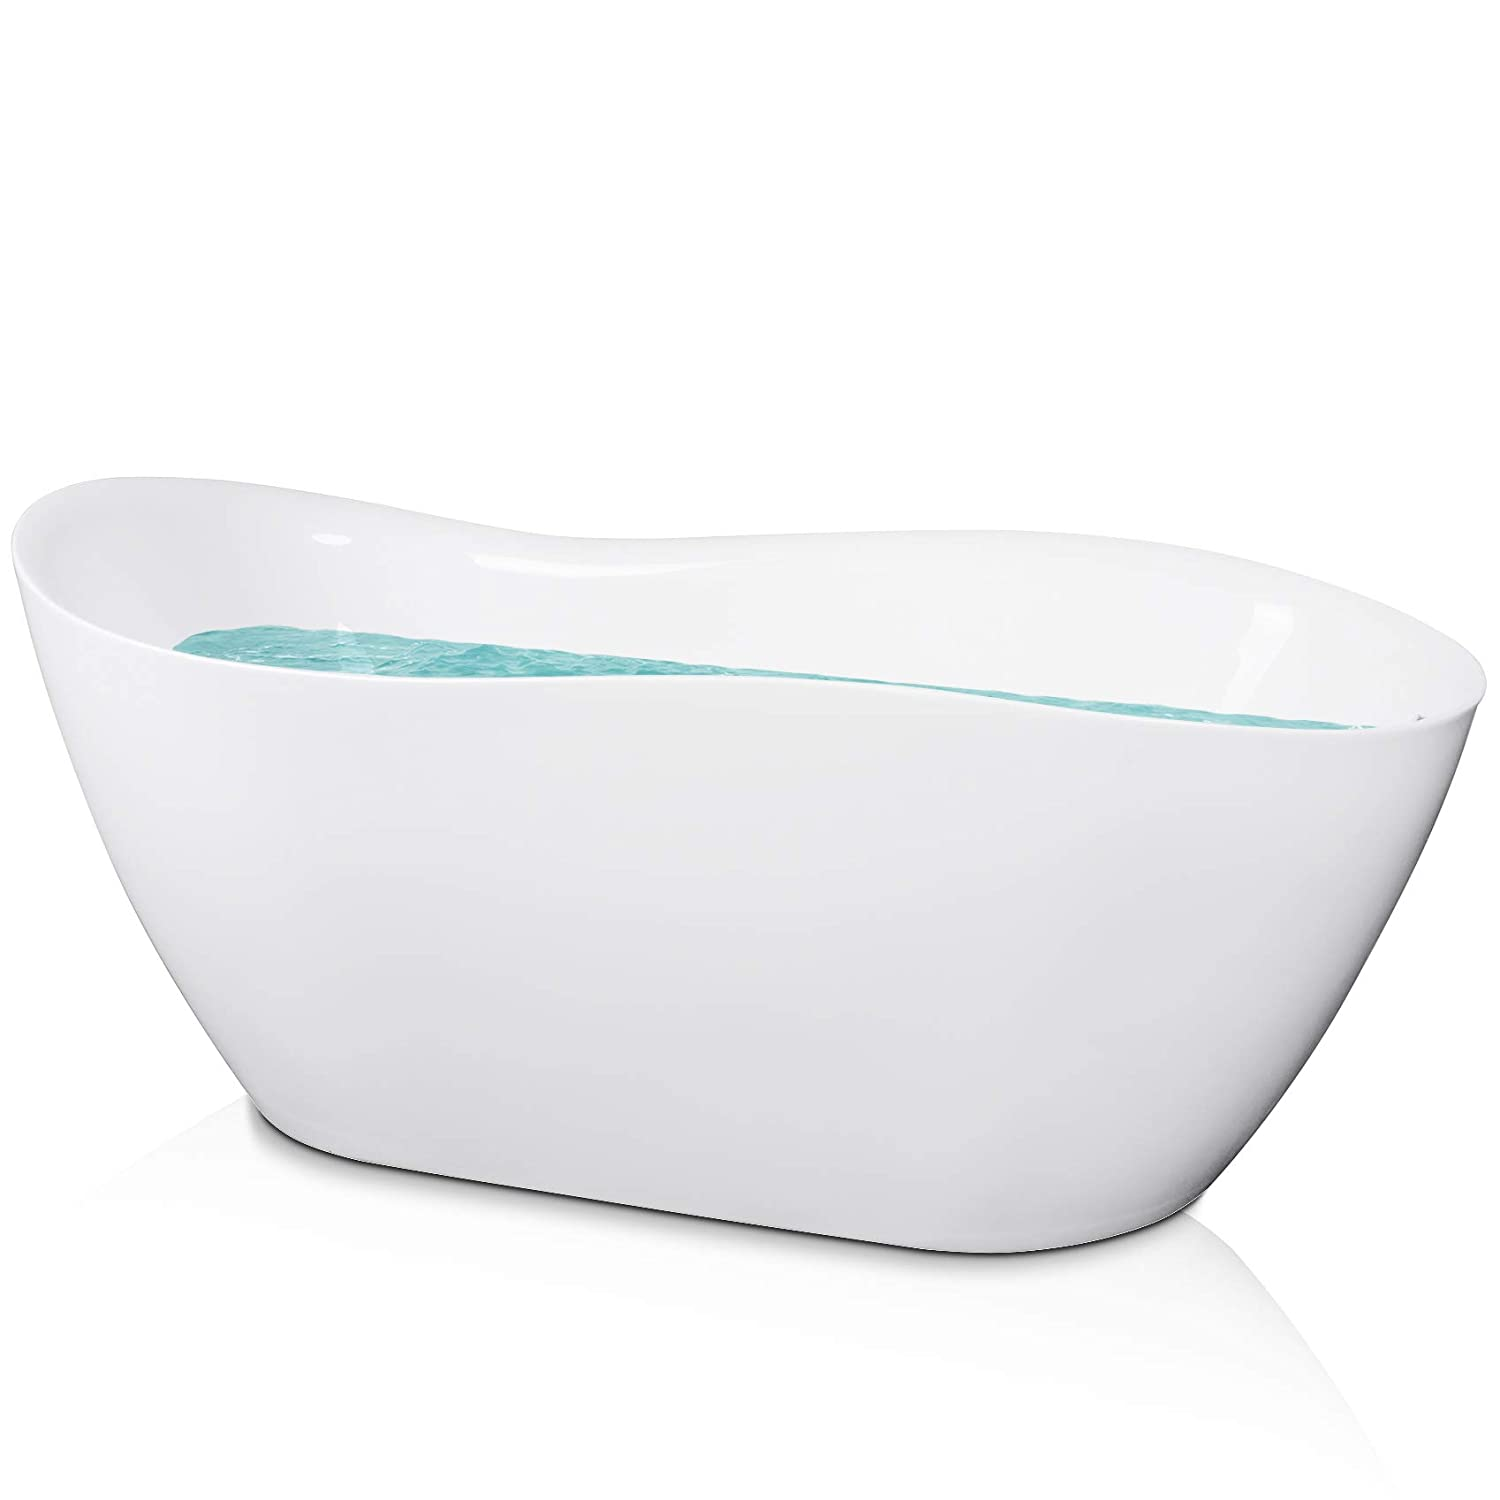 AKDY Oval Freestanding White Acrylic Finish Soaking Bathtub w Overflow 67